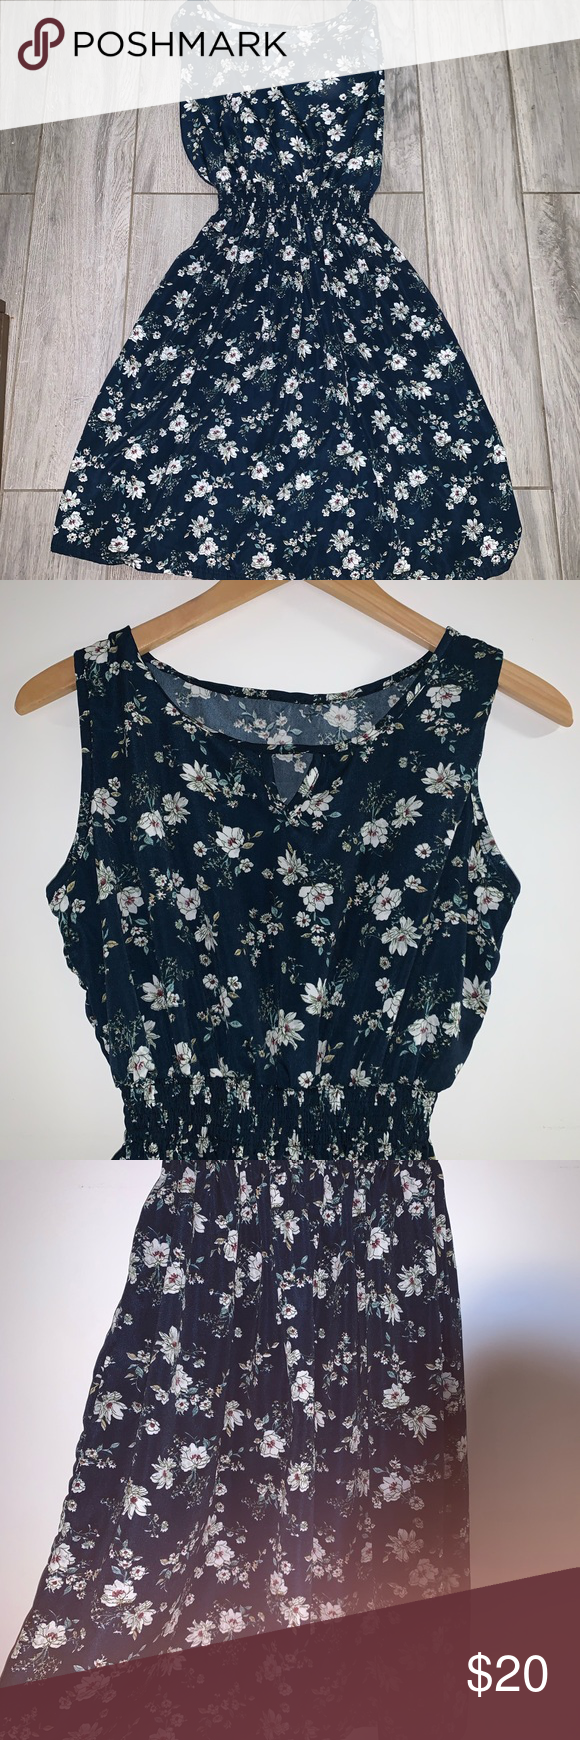 Floral navy dress size small Floral navy blue dress size small D1 Dresses